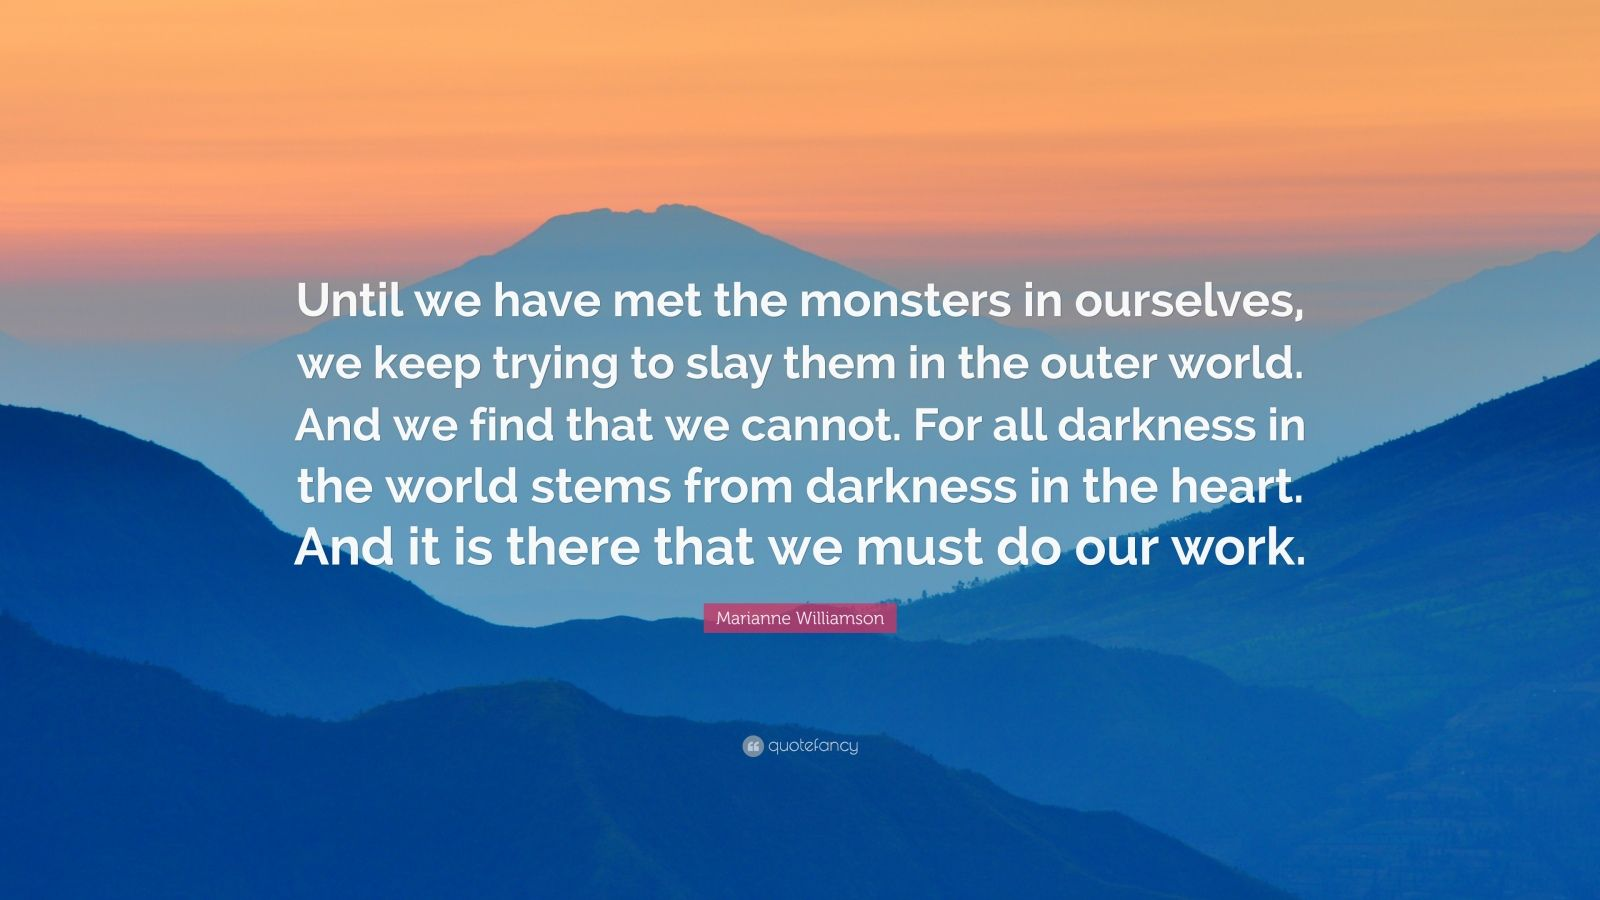 """Marianne Williamson Quote: """"Until we have met the monsters in ourselves, we keep trying to slay them in the outer world. And we find that we cannot. For all darkness in the world stems from darkness in the heart. And it is there that we must do our work."""""""